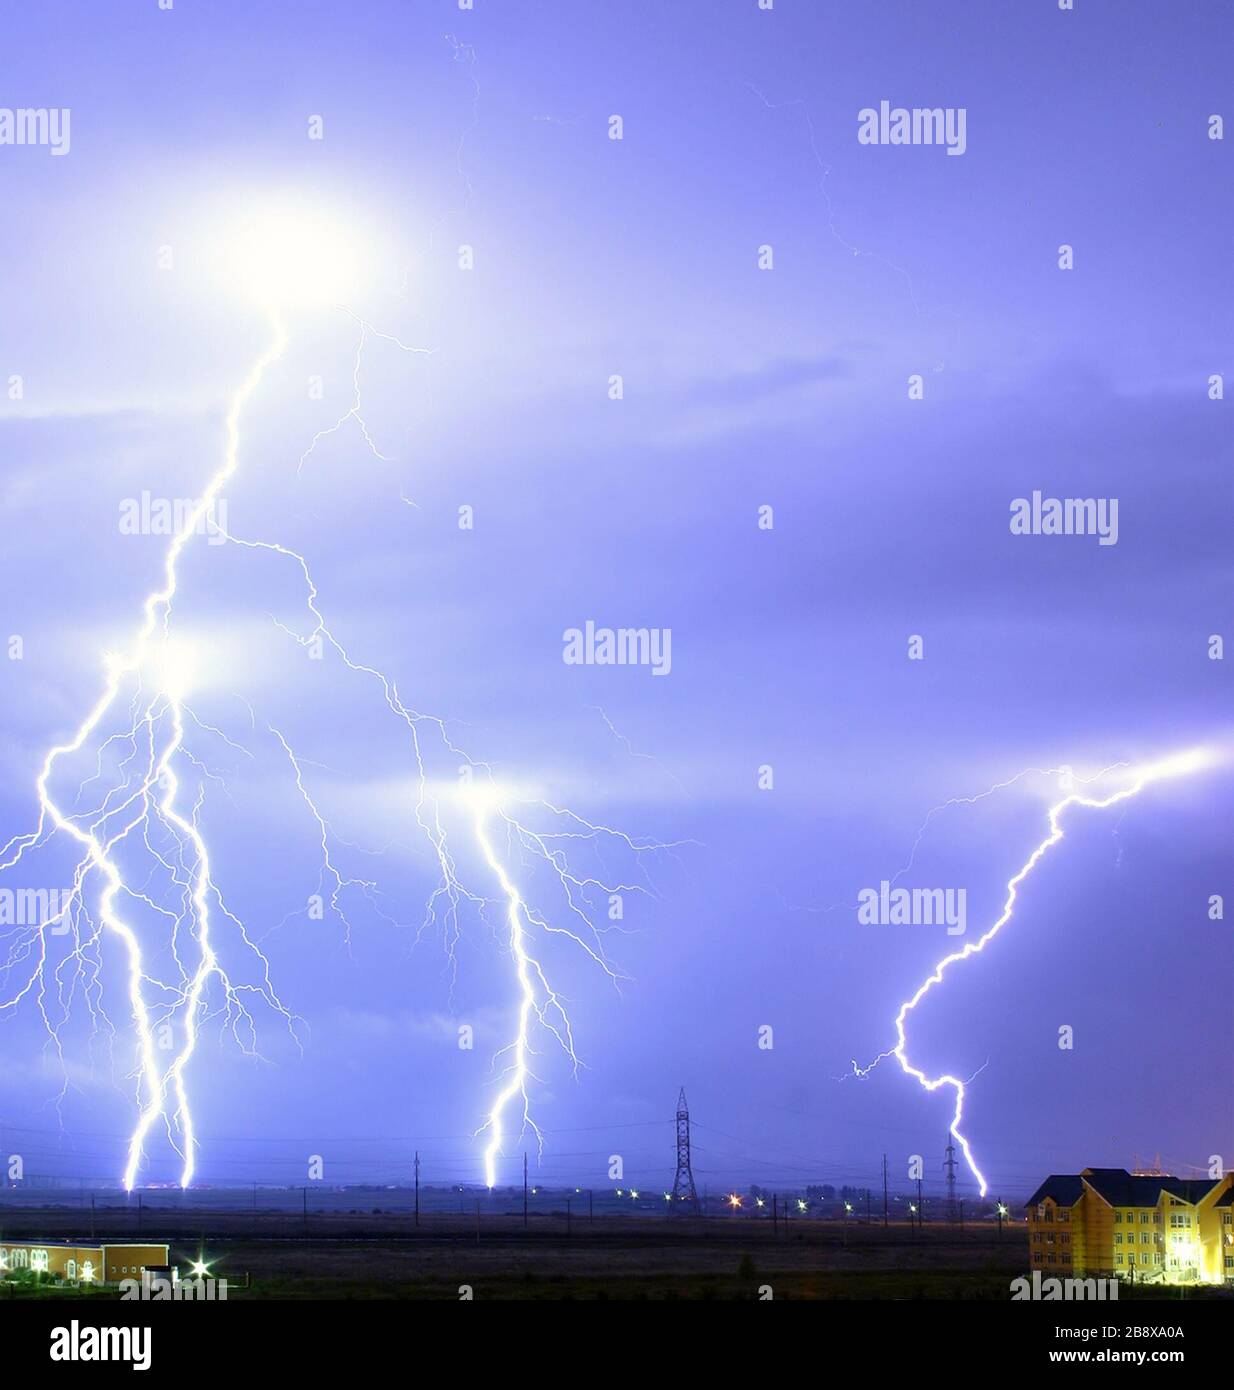 """English: Lightning over the outskirts of Oradea, Romania, during the August 17, 2005 thunderstorm which went on to cause major flash floods over southern Romania. Română: Descărcări elctrice la marginea oraşului Oradea, în timpul furtunilor din 17 august 2005, ce au cauzat de asemenea şi viiturile din sudul României. Nederlands: Bliksem in een buitenwijk van Oradea, Roemenië, tijdens het onweer van 17 augustus 2005, dat gepaard ging met hevige overstromingen in het zuiden van Roemenië. Technical details: Canon EOS 300D, EF-S 18-55 lens; Exp: 30s; F/13; ISO400; 17 August 2005; Cropped version Stock Photo"